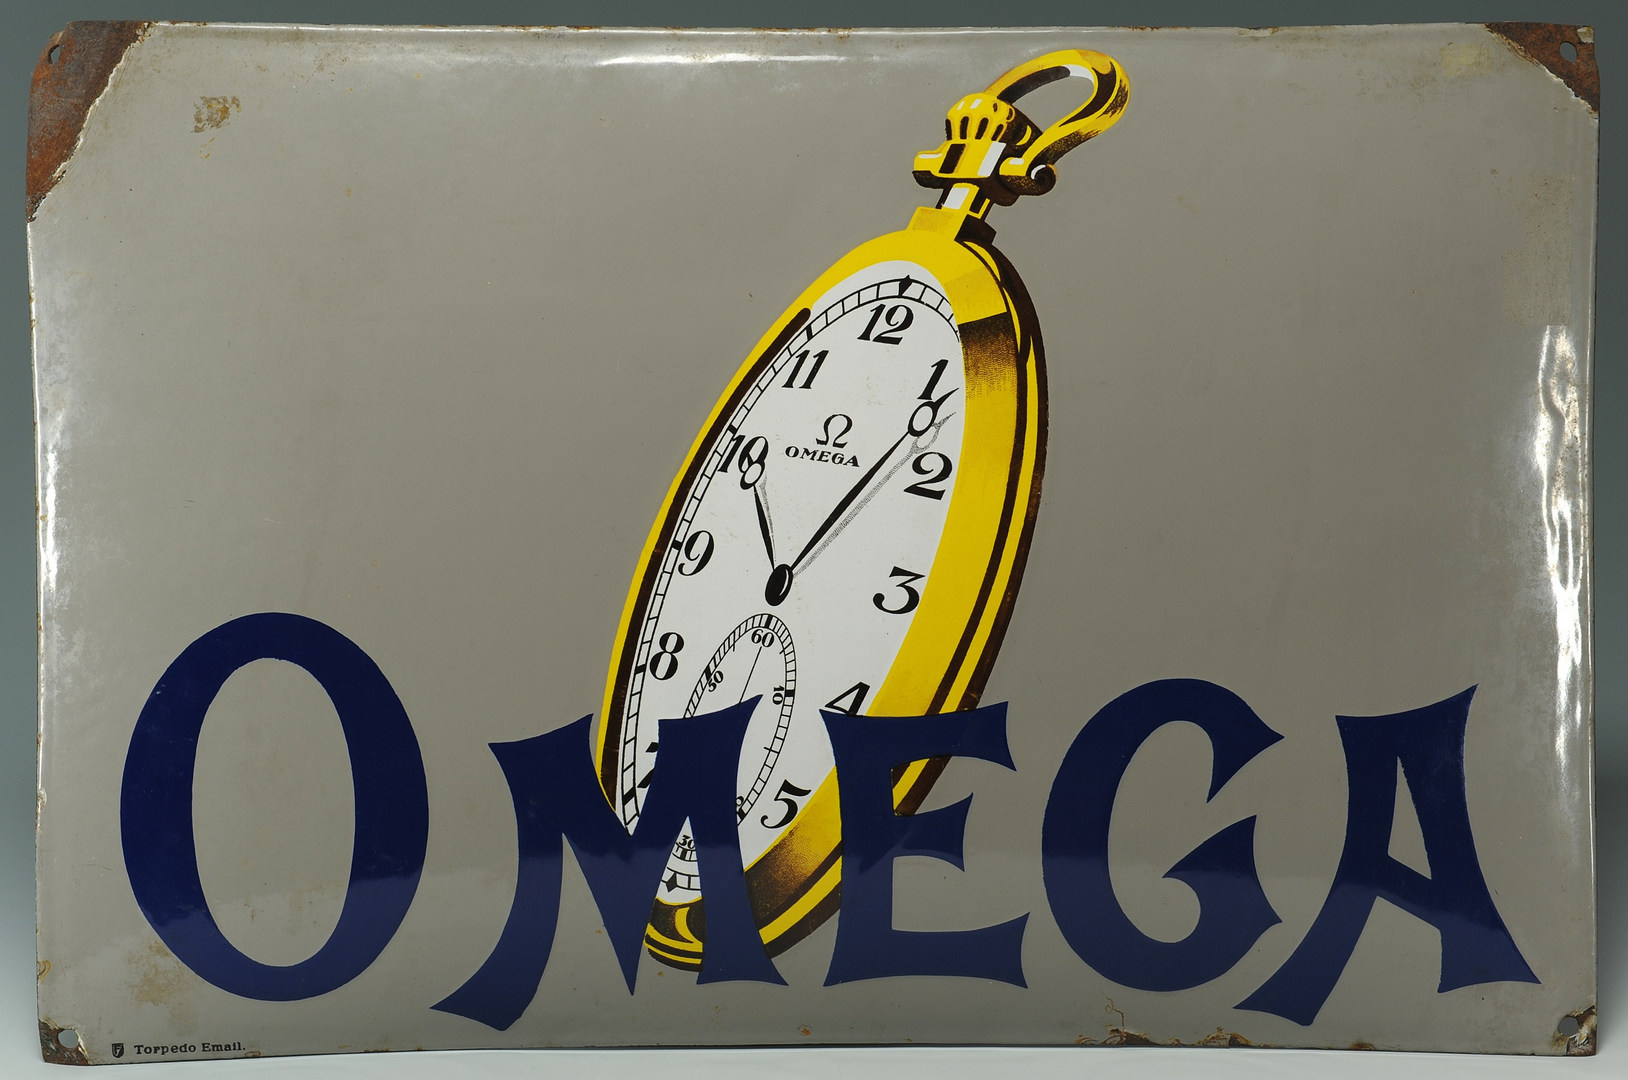 Lot 576: Omega Pocket Watches Advertising Sign